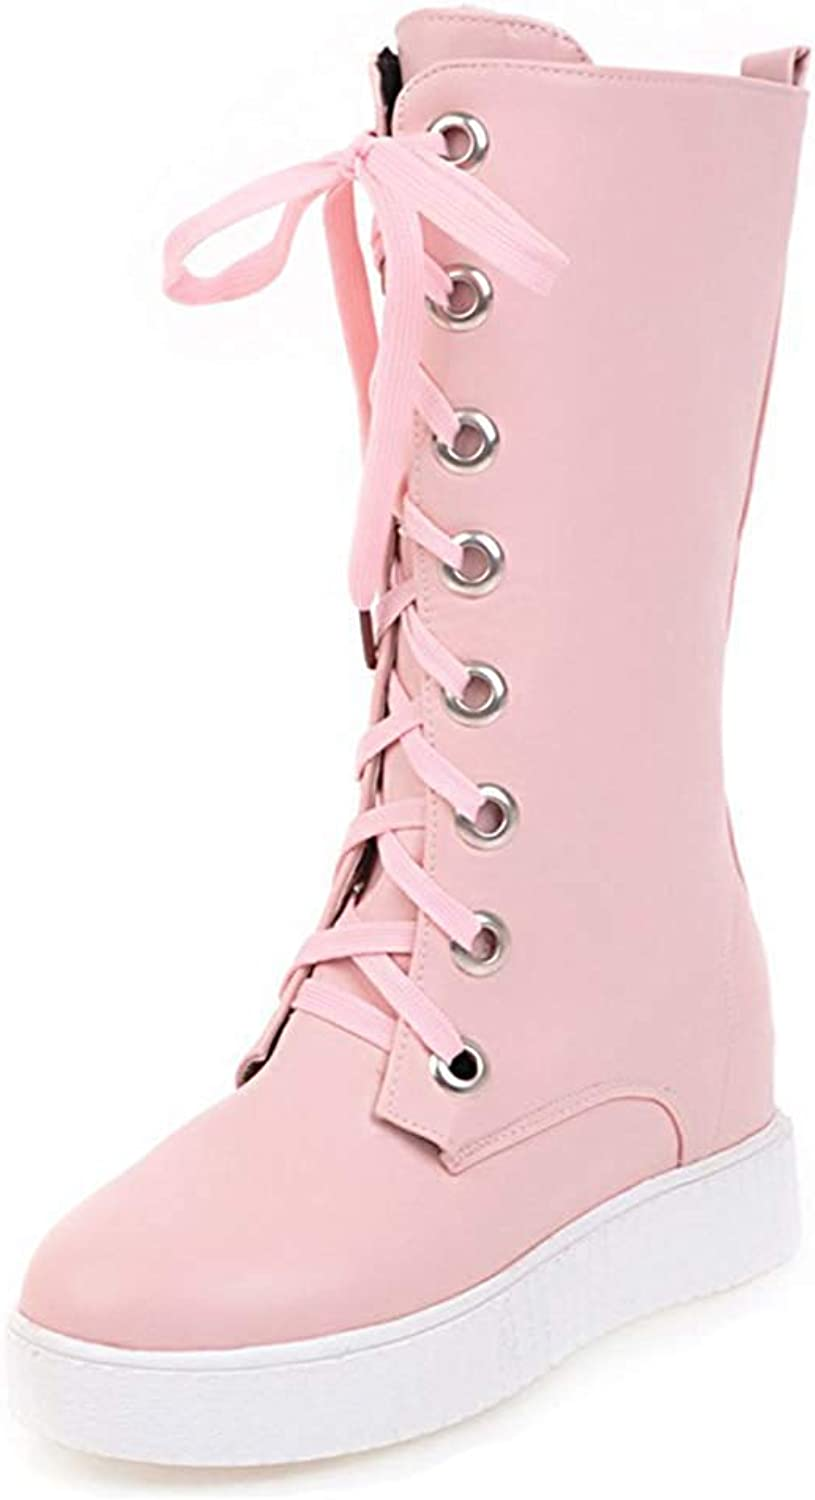 Unm Women's Comfort Thick Sole Round Toe Lace Up Elevator Low Heel Platform Mid Calf Riding Boots